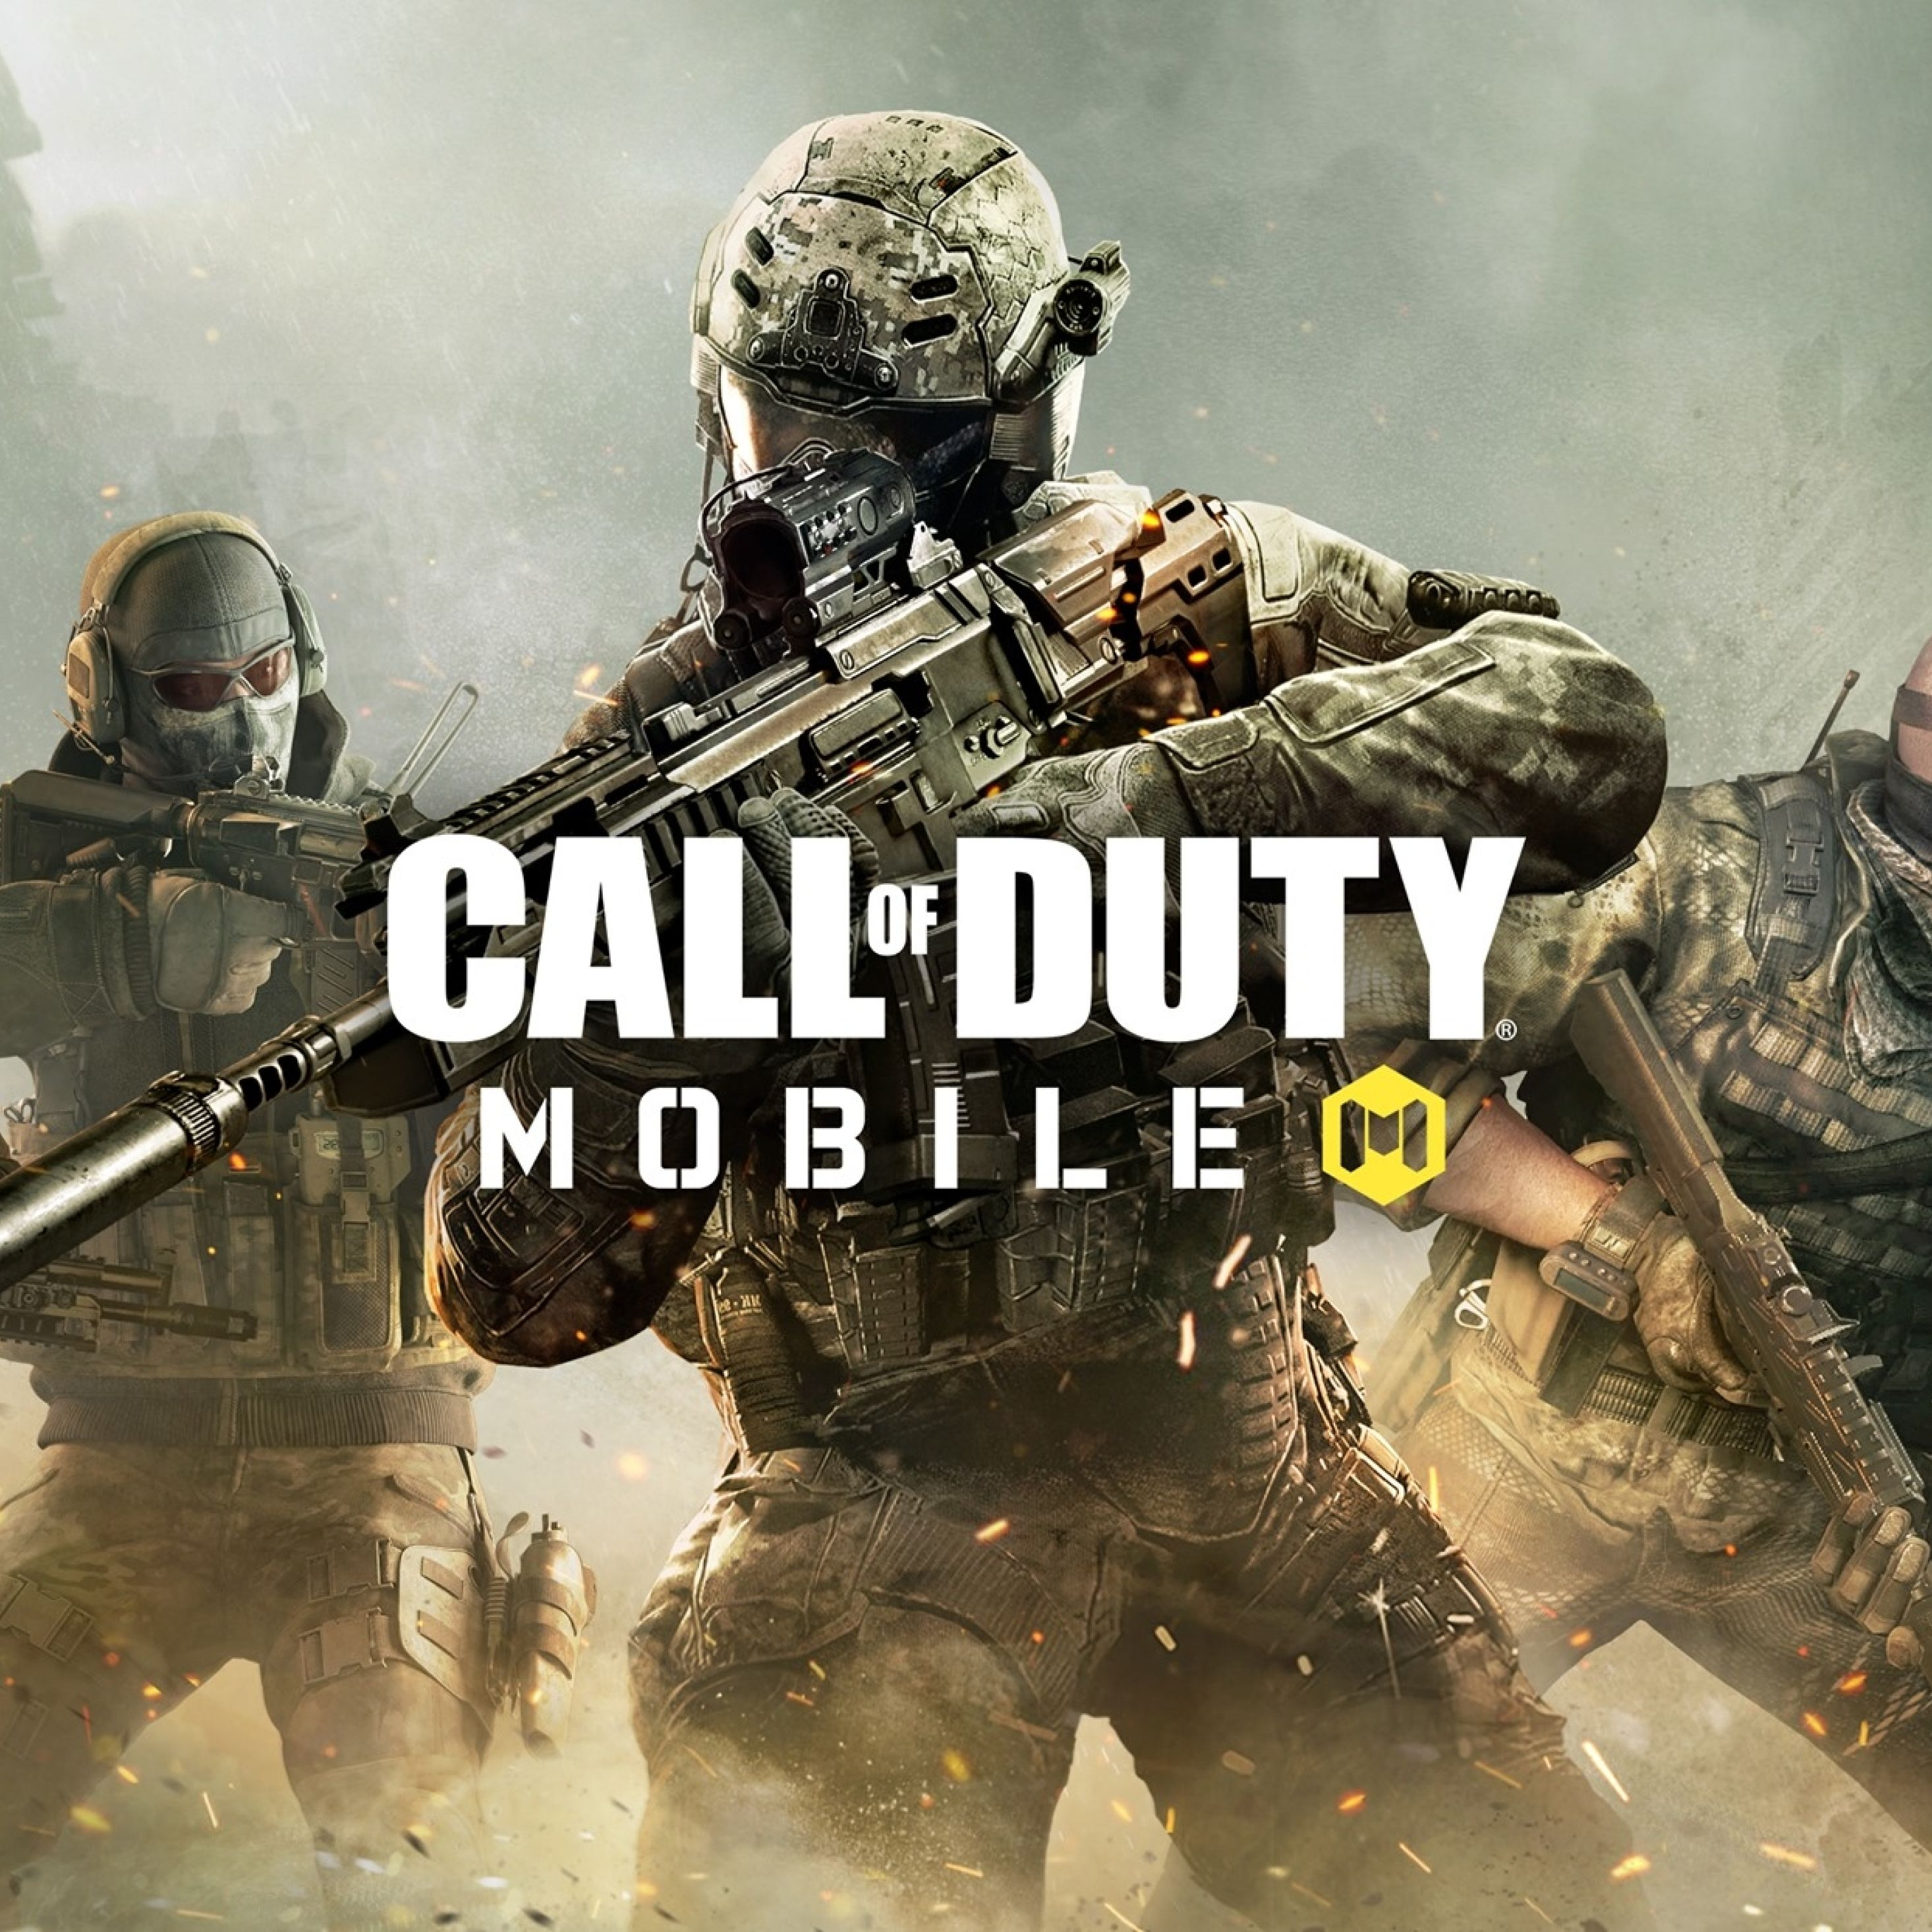 Call of Duty Mobile Wallpapers   Top Call of Duty Mobile 2932x2932